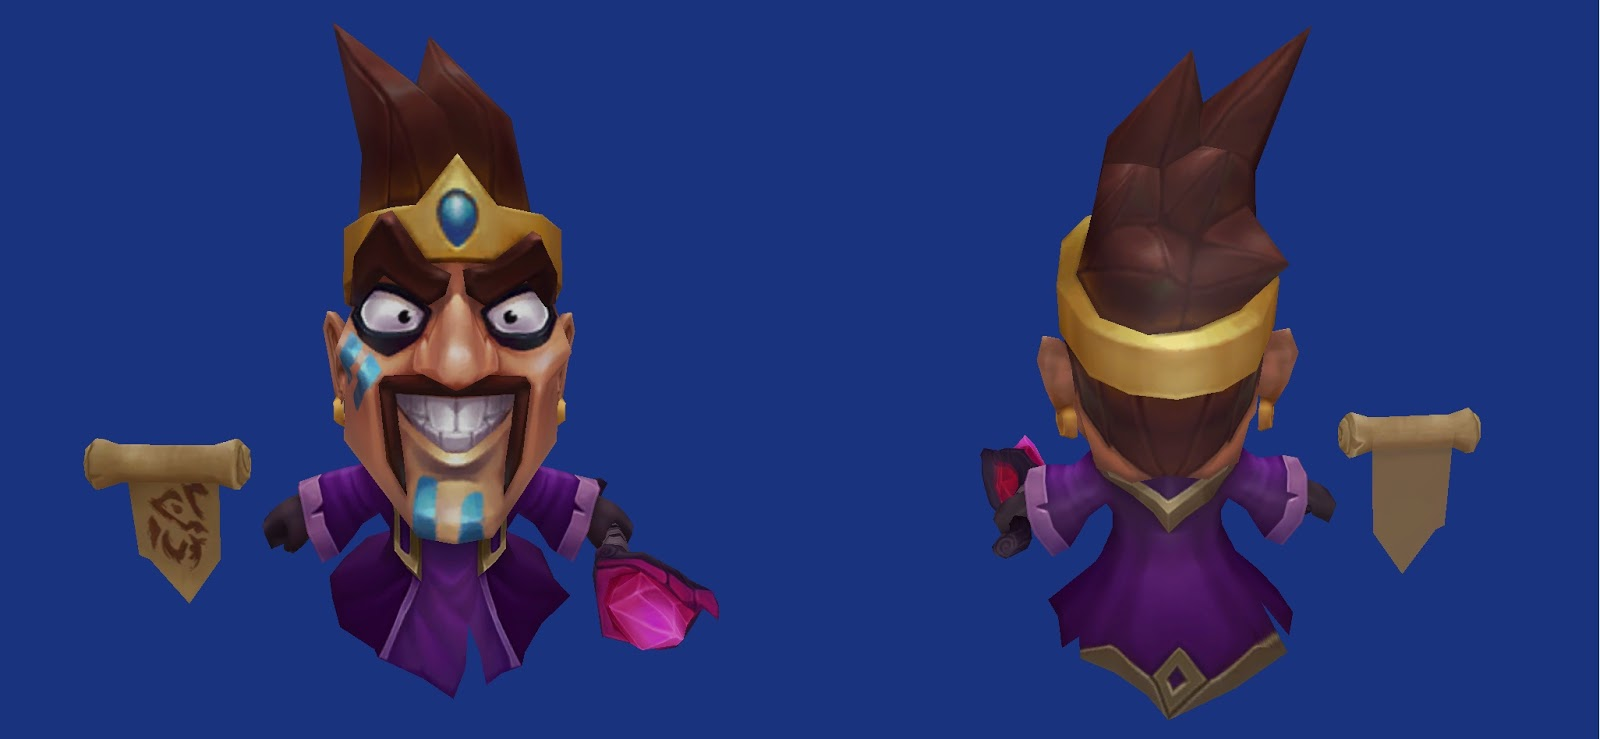 Minion Draven purple caster